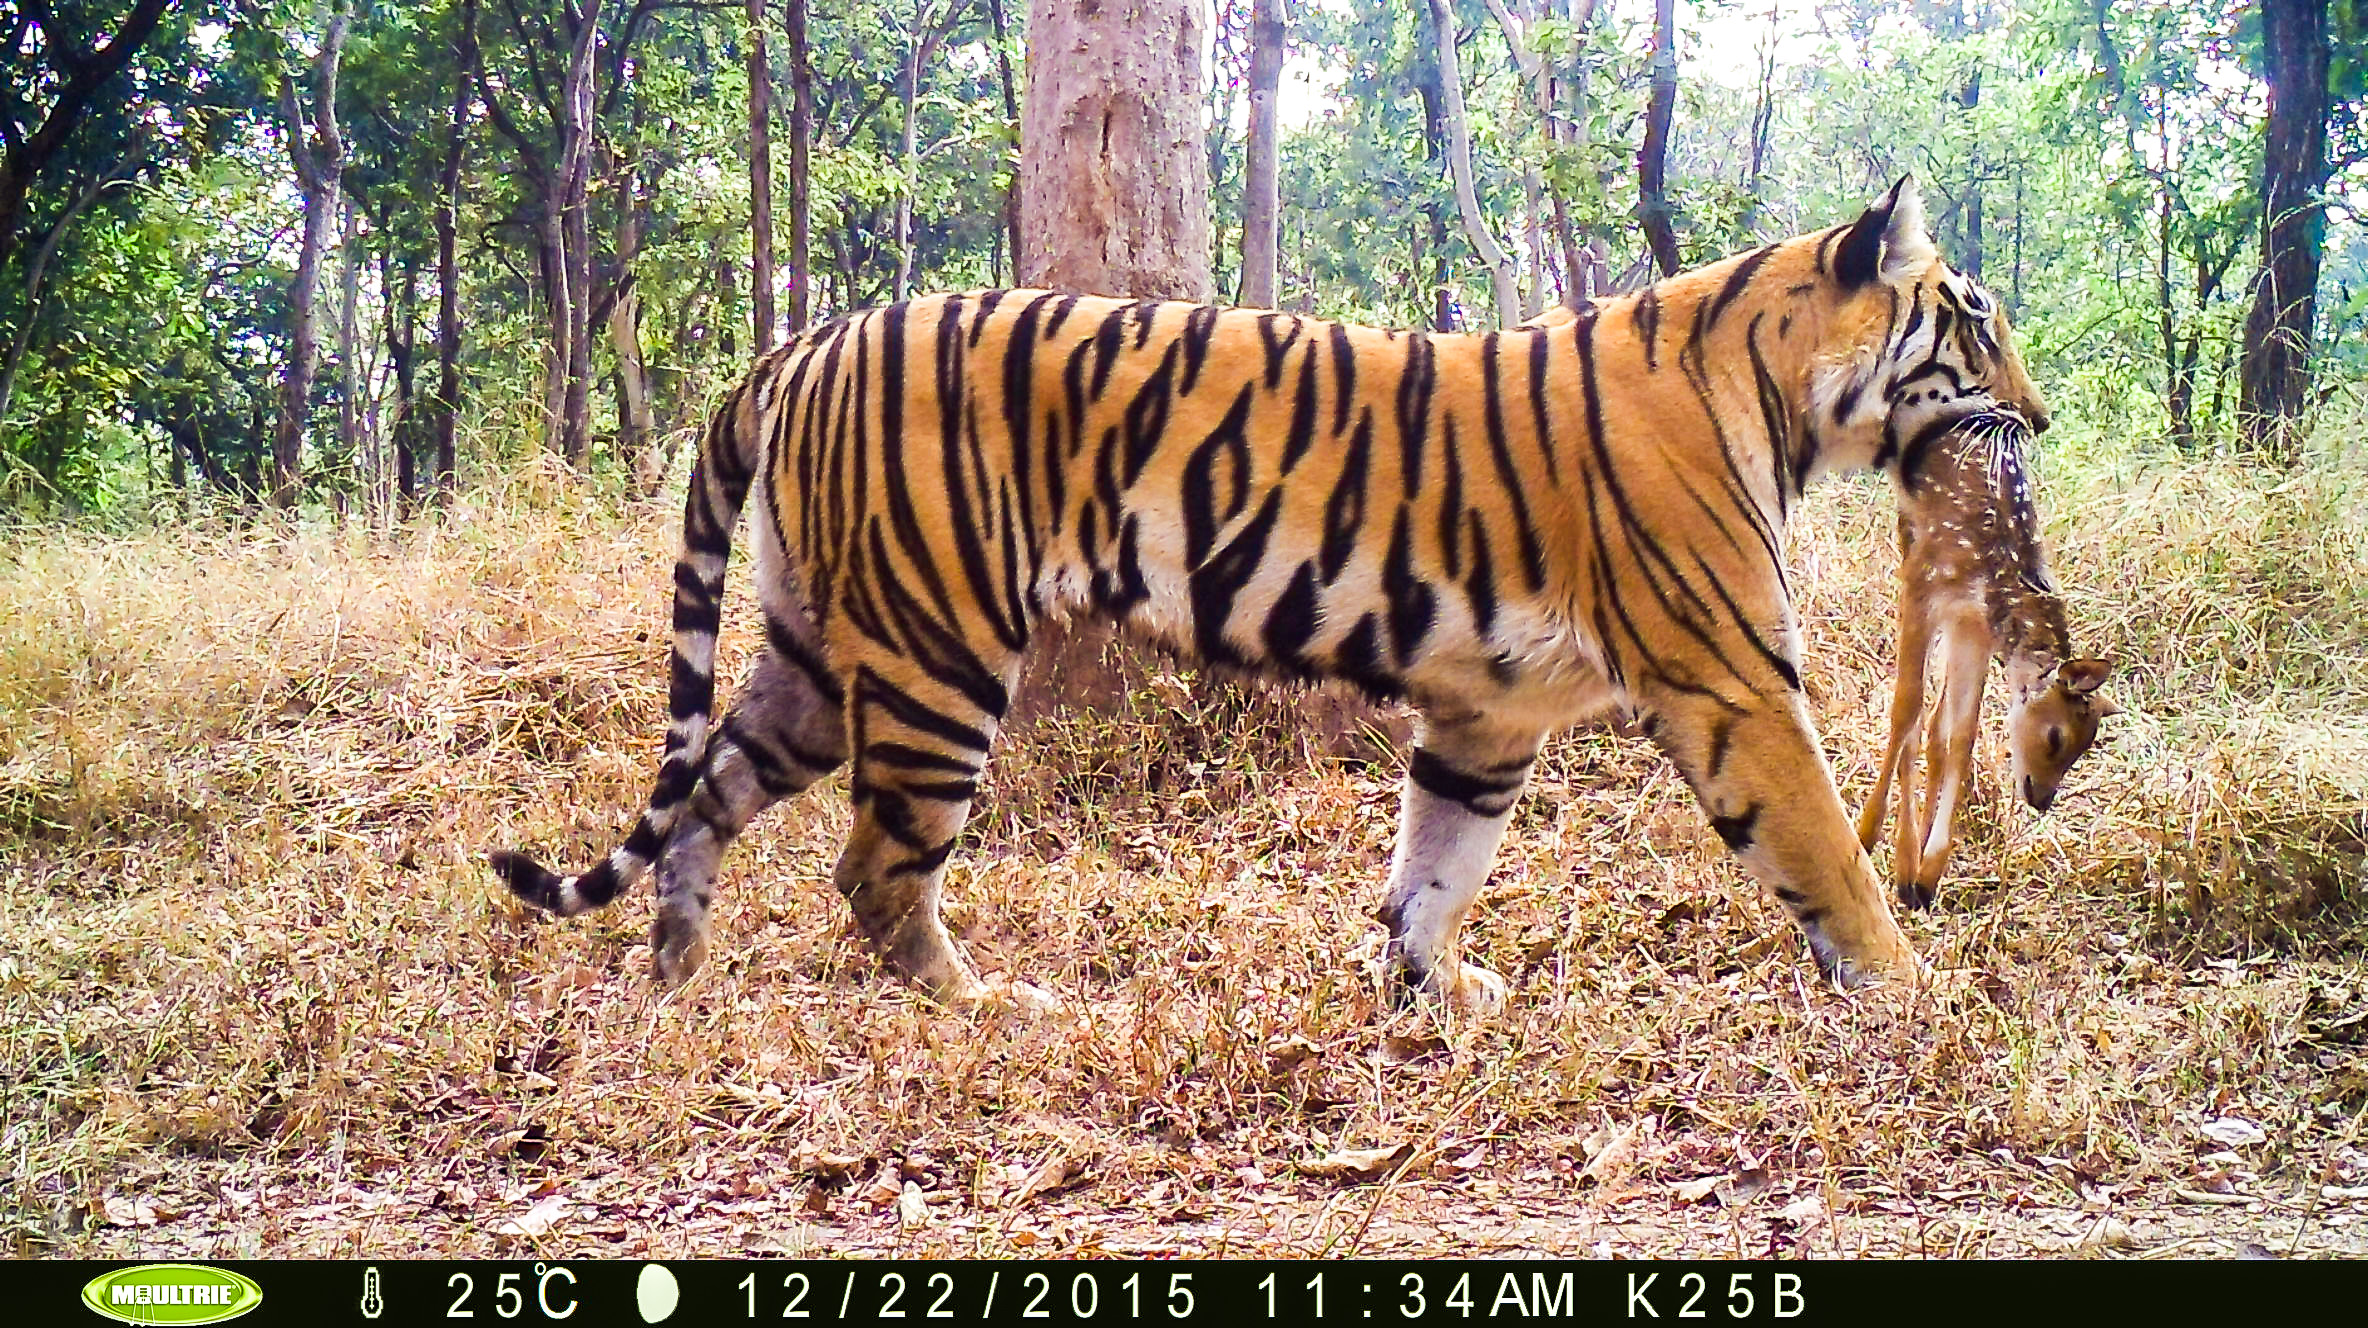 Above images captured from the camera trap (Camera trap images from Pench Tiger Reserve)